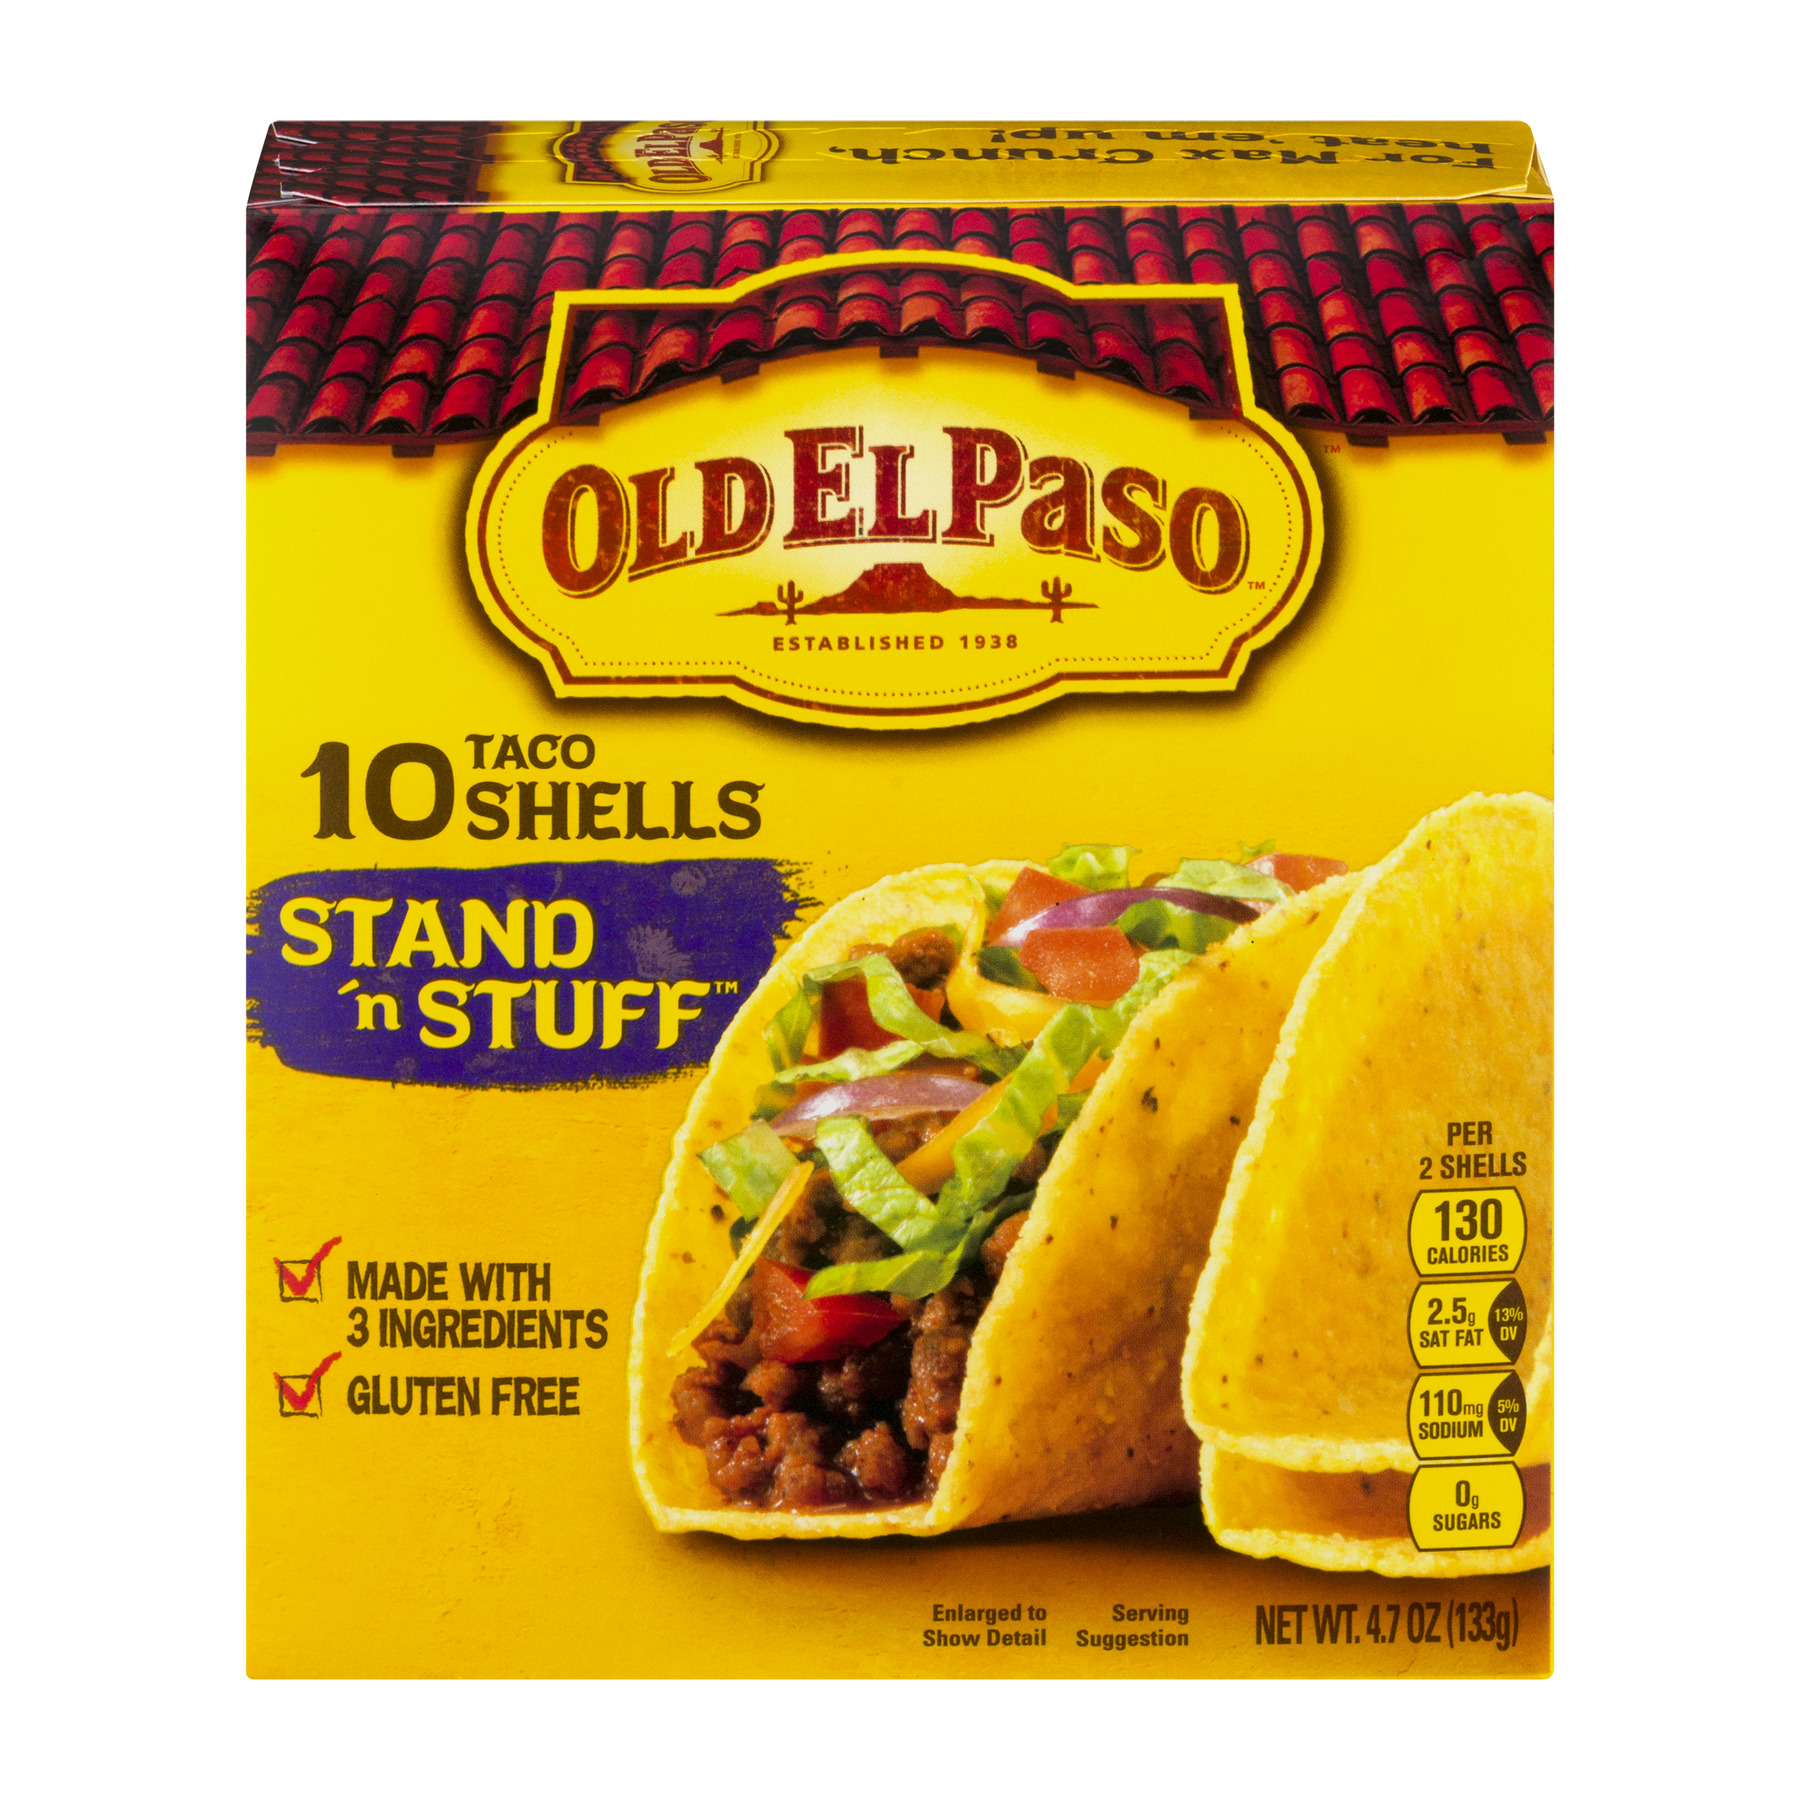 Old El Paso™ Stand 'n Stuff Shells 10 ct 4.7 oz Box